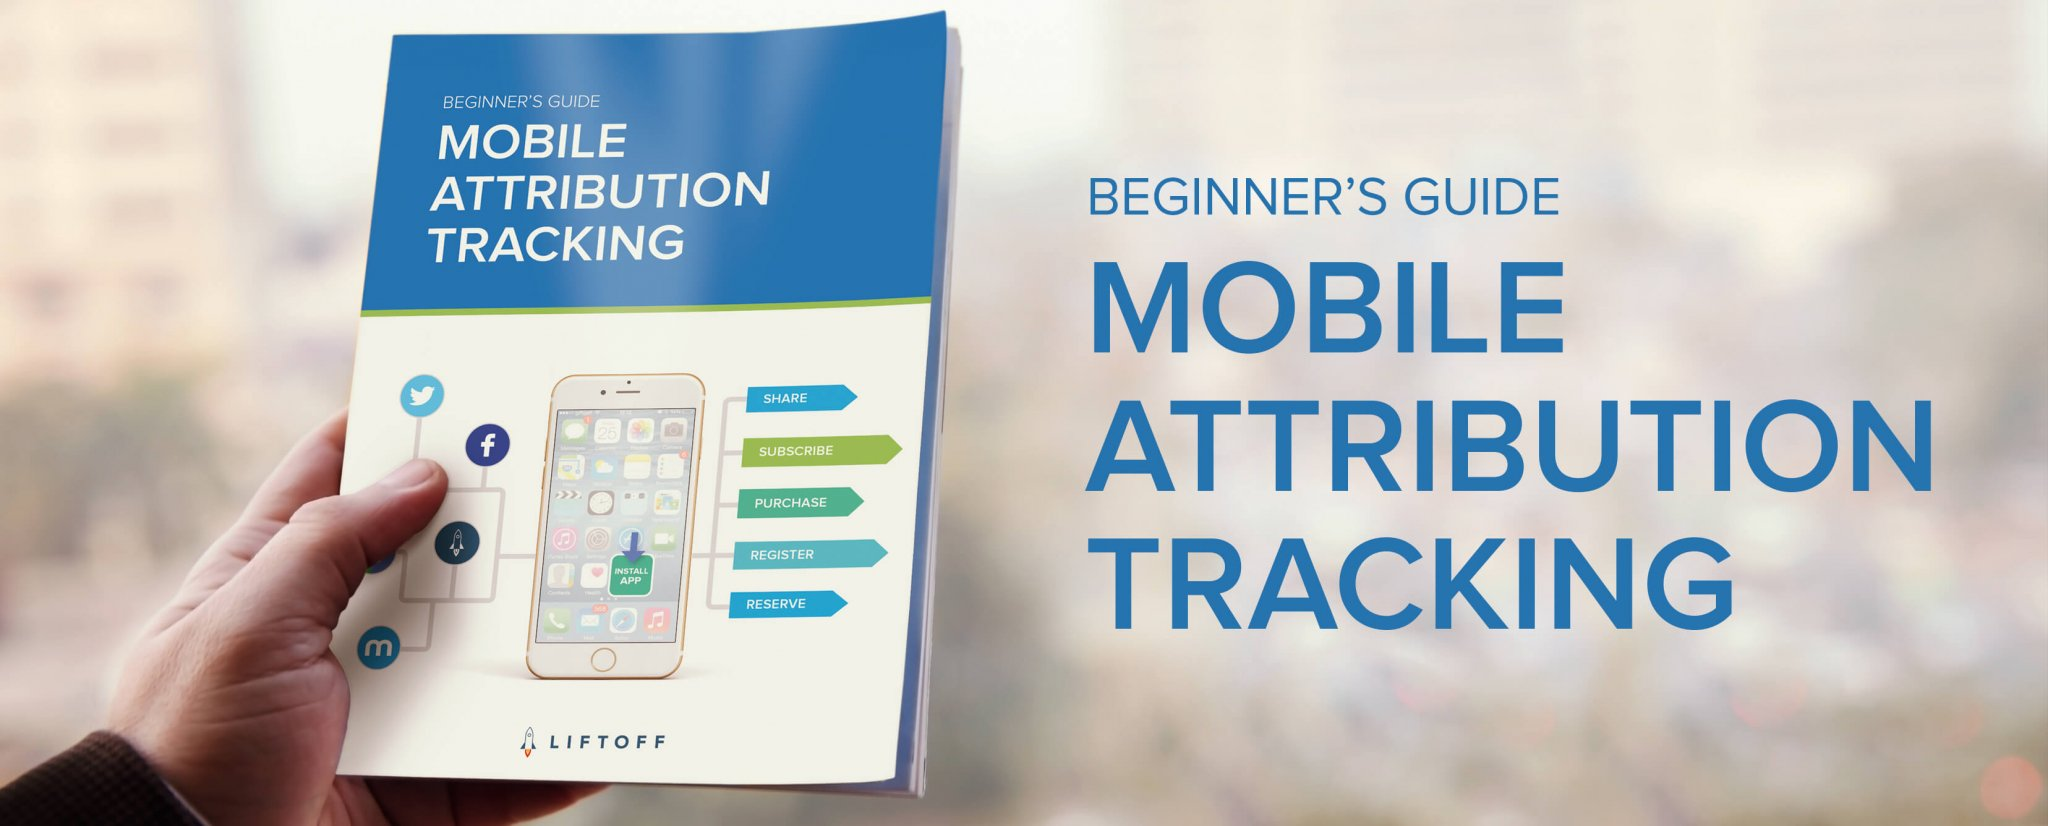 NEW! Beginner's Guide to Mobile Attribution Tracking